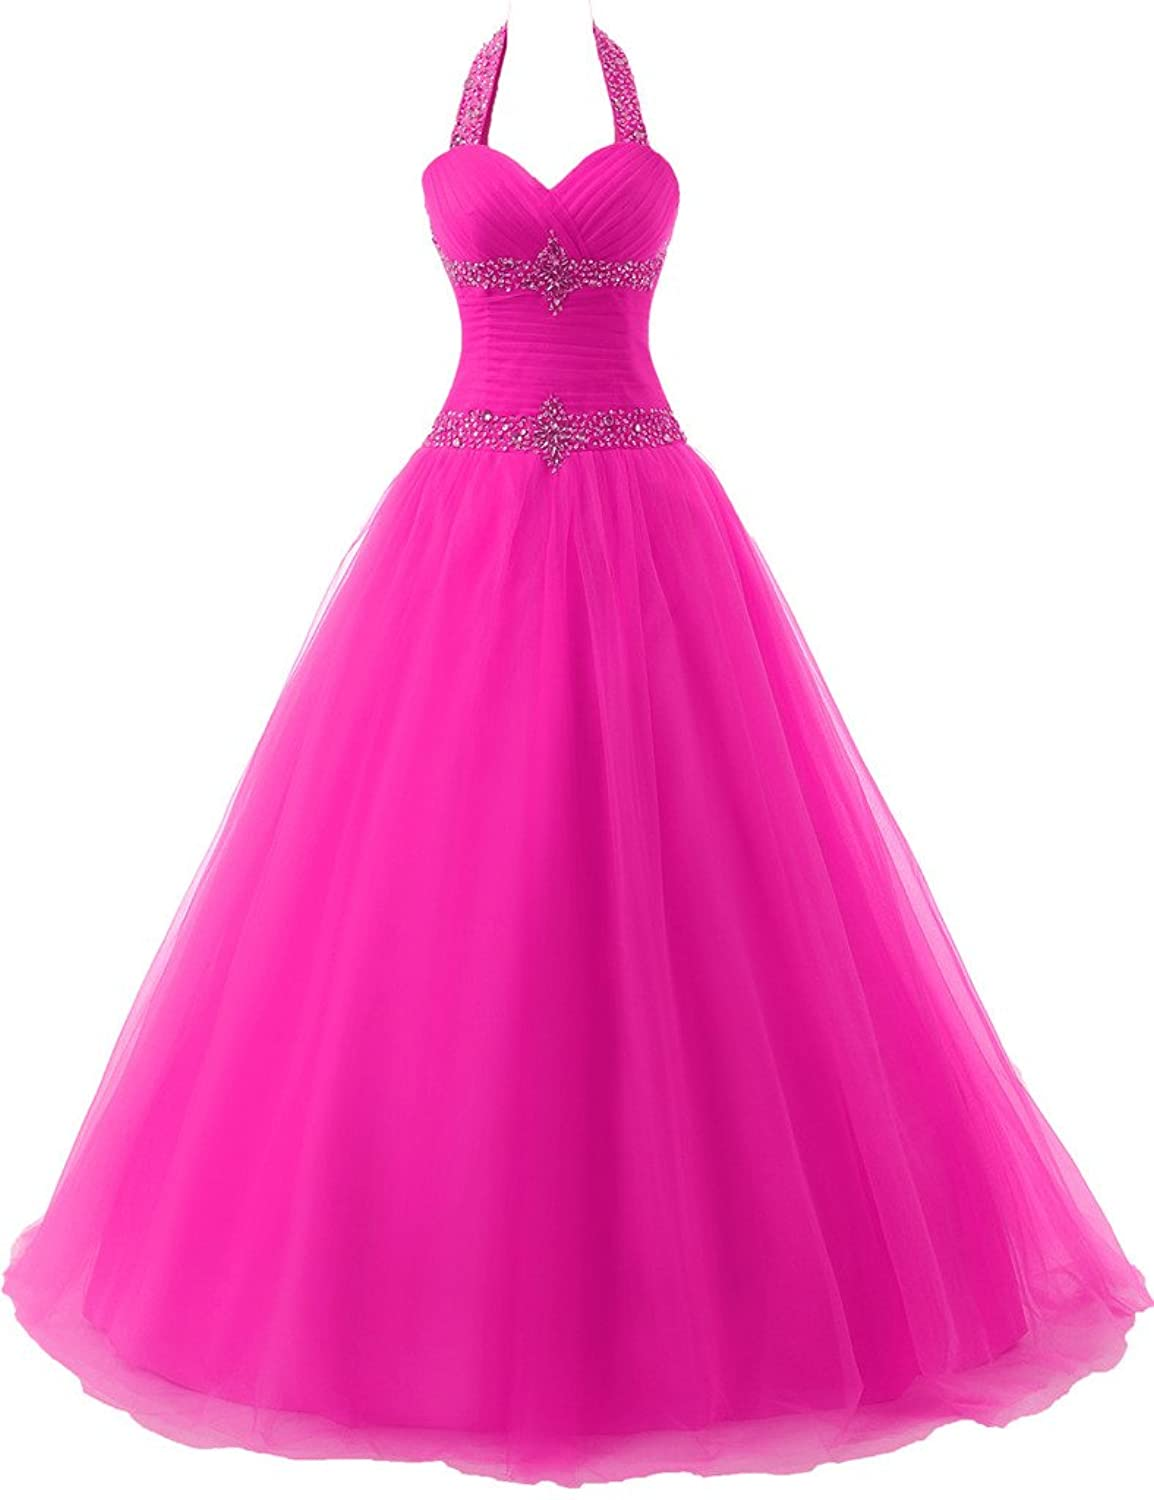 JAEDEN Halter Backless Quinceanera Dresses Ball Prom Dresses